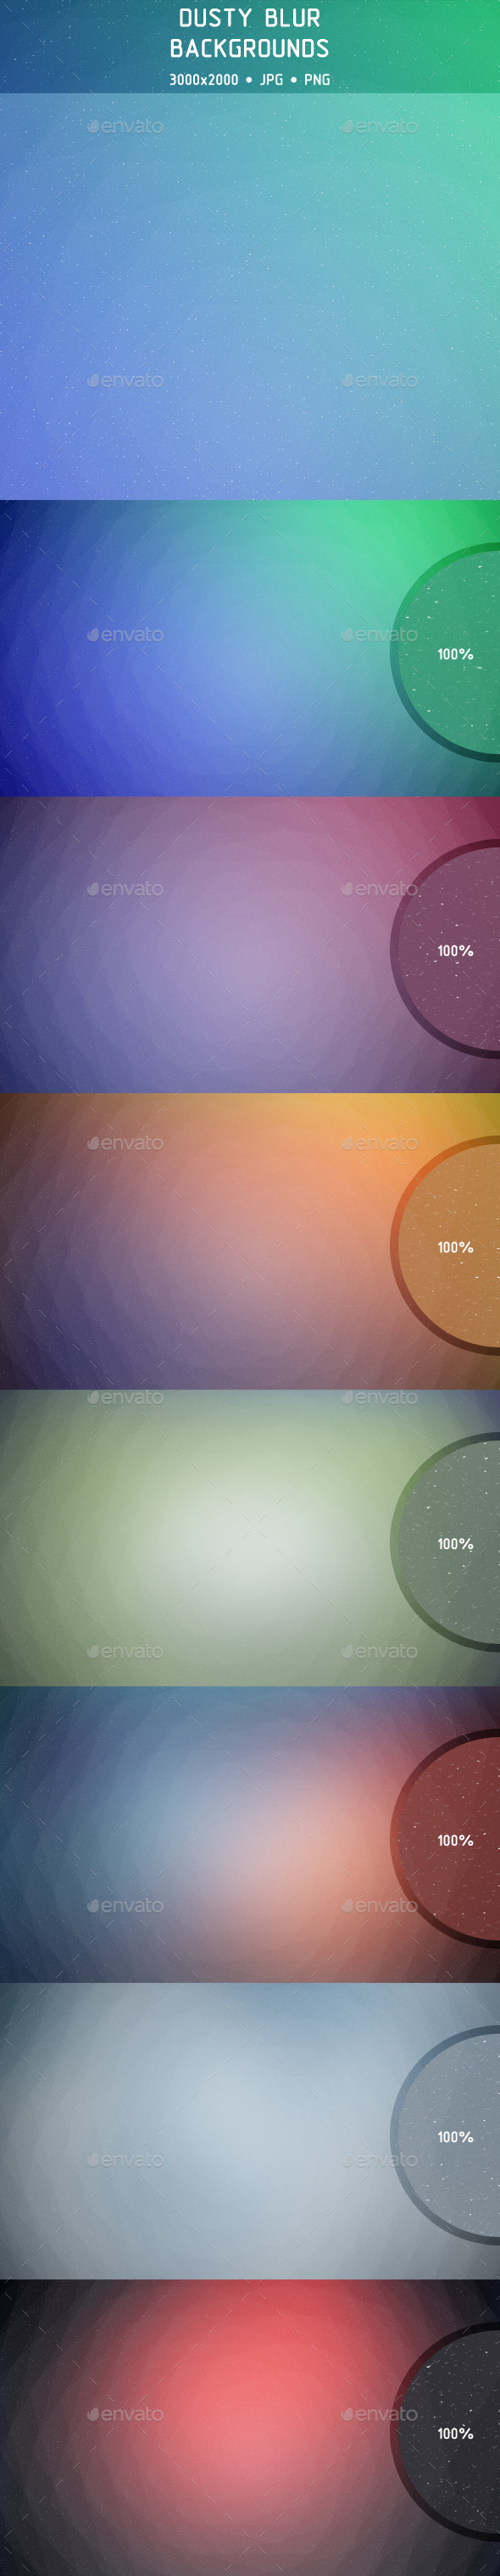 Dusty Blur Backgrounds - Backgrounds Graphics